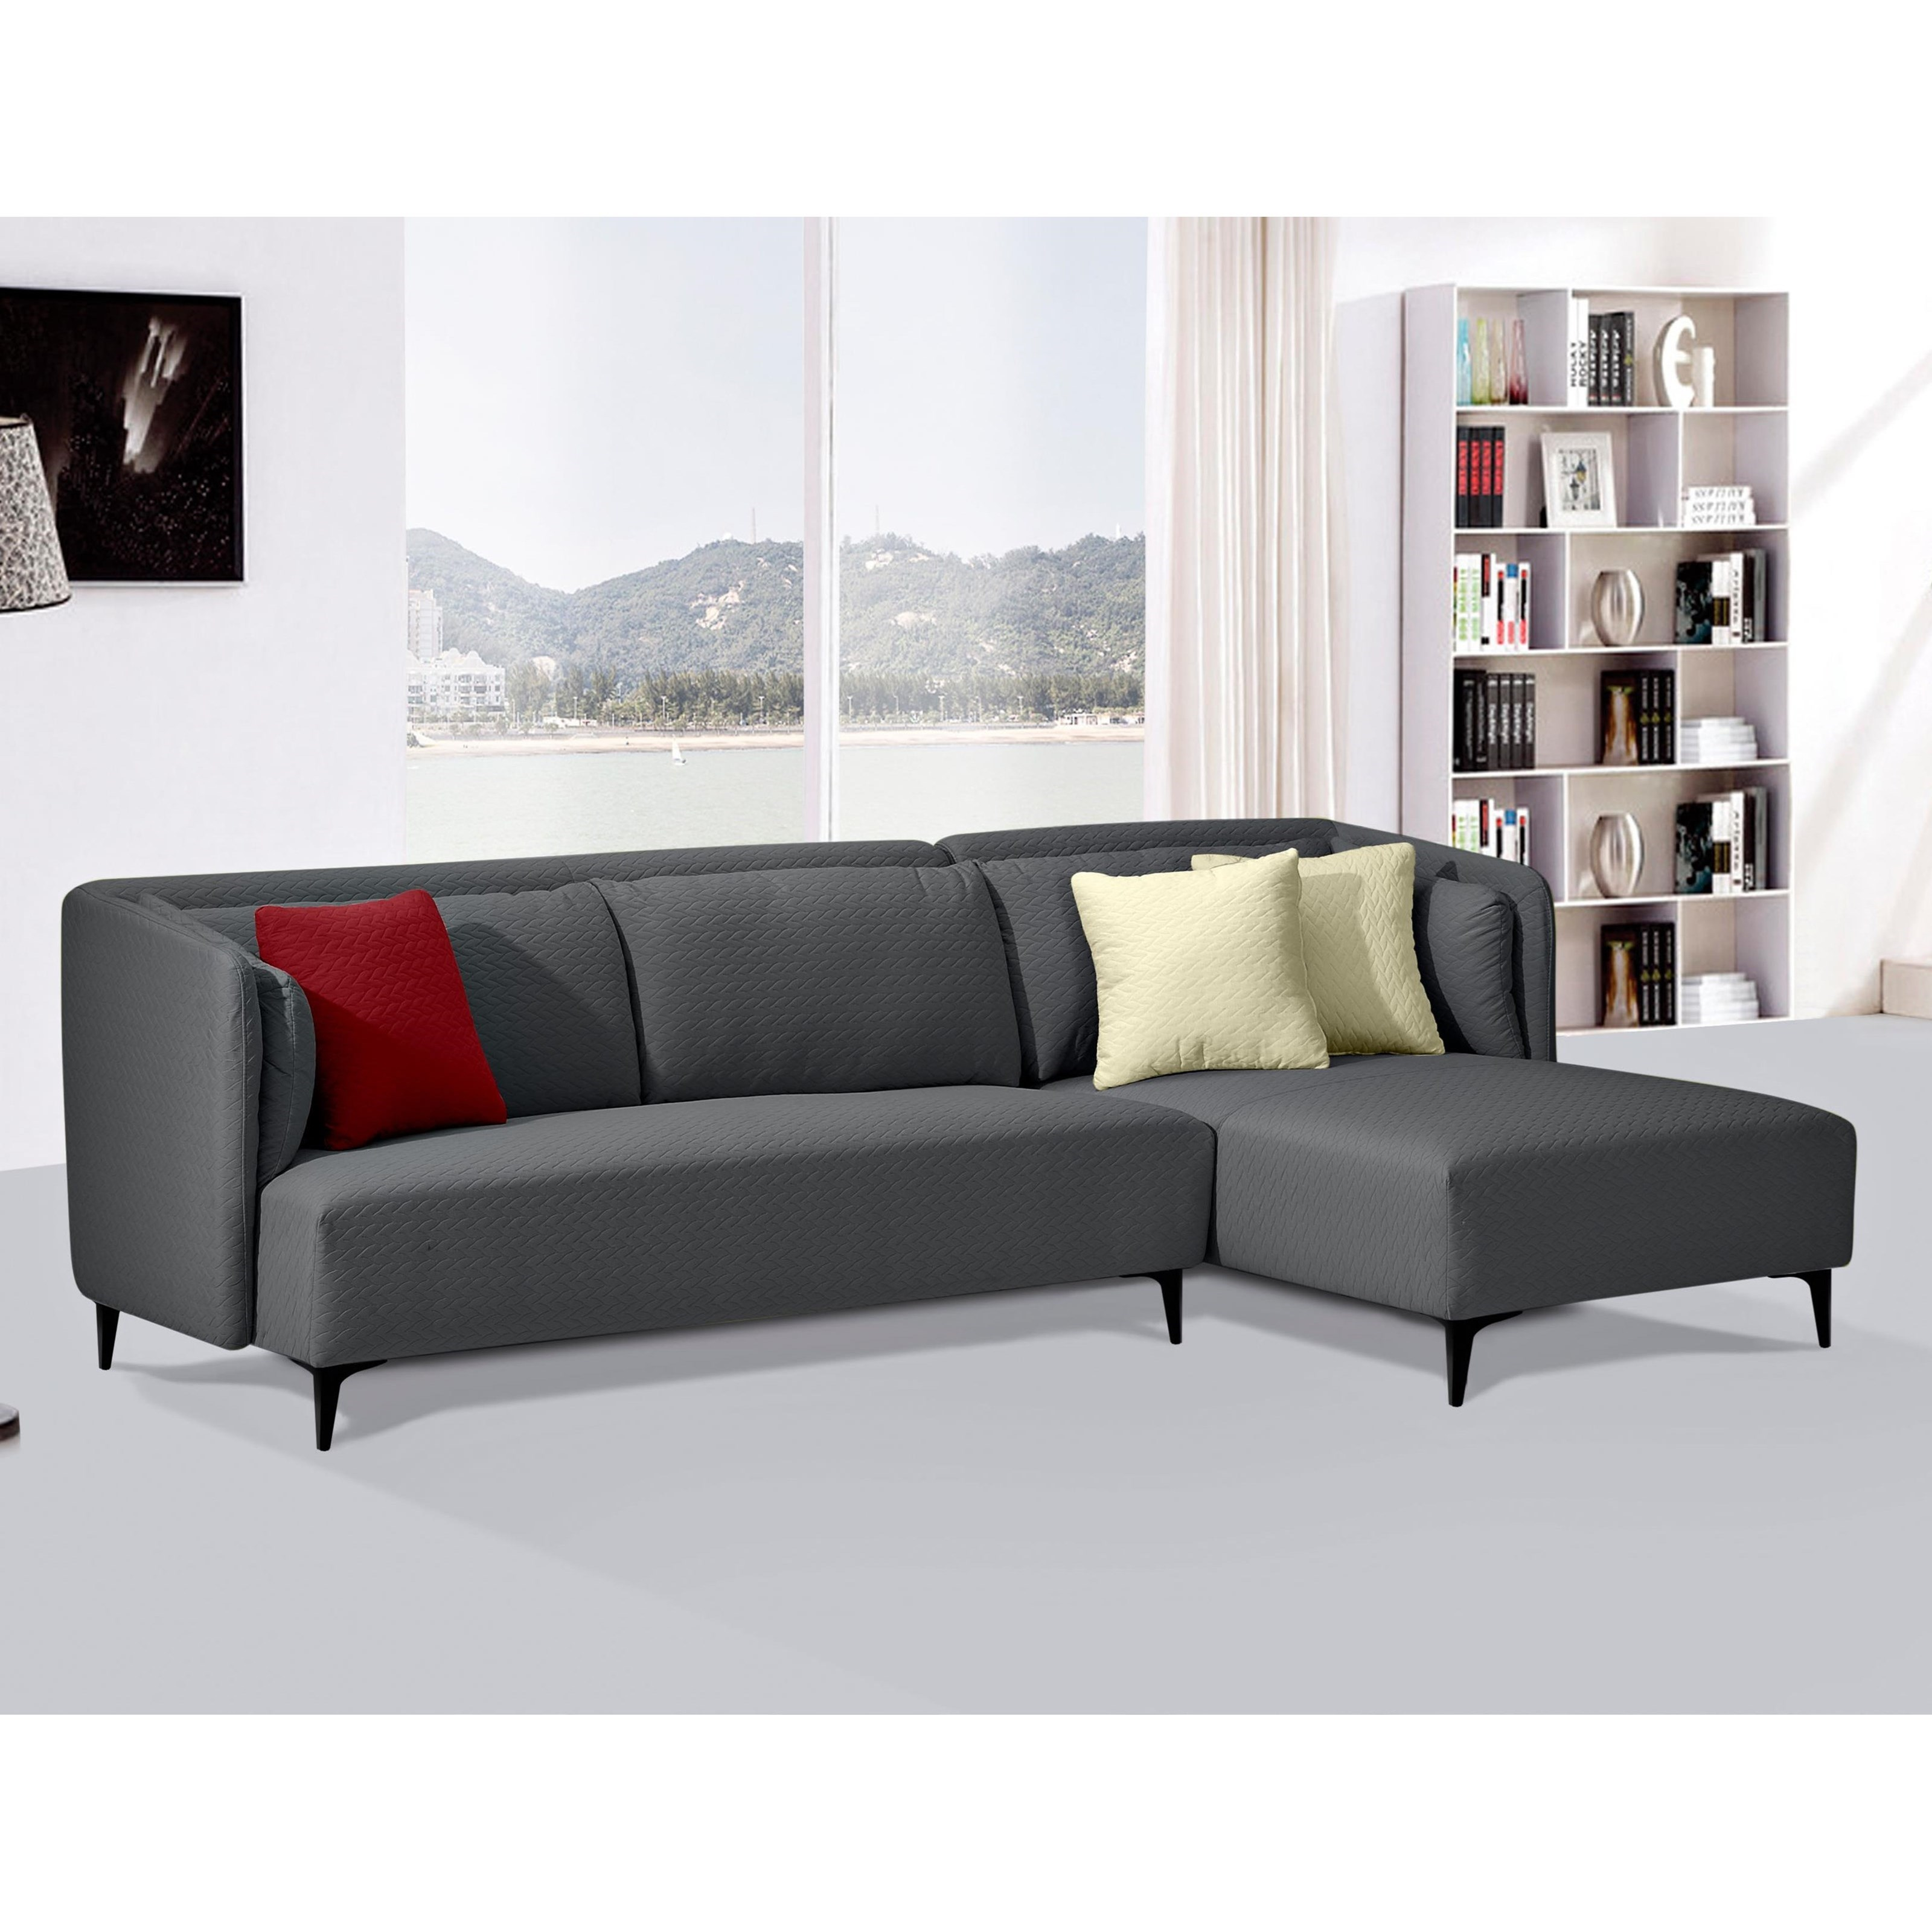 Diamond Sofa Dylan Sectional Red Knot Sectional Sofas